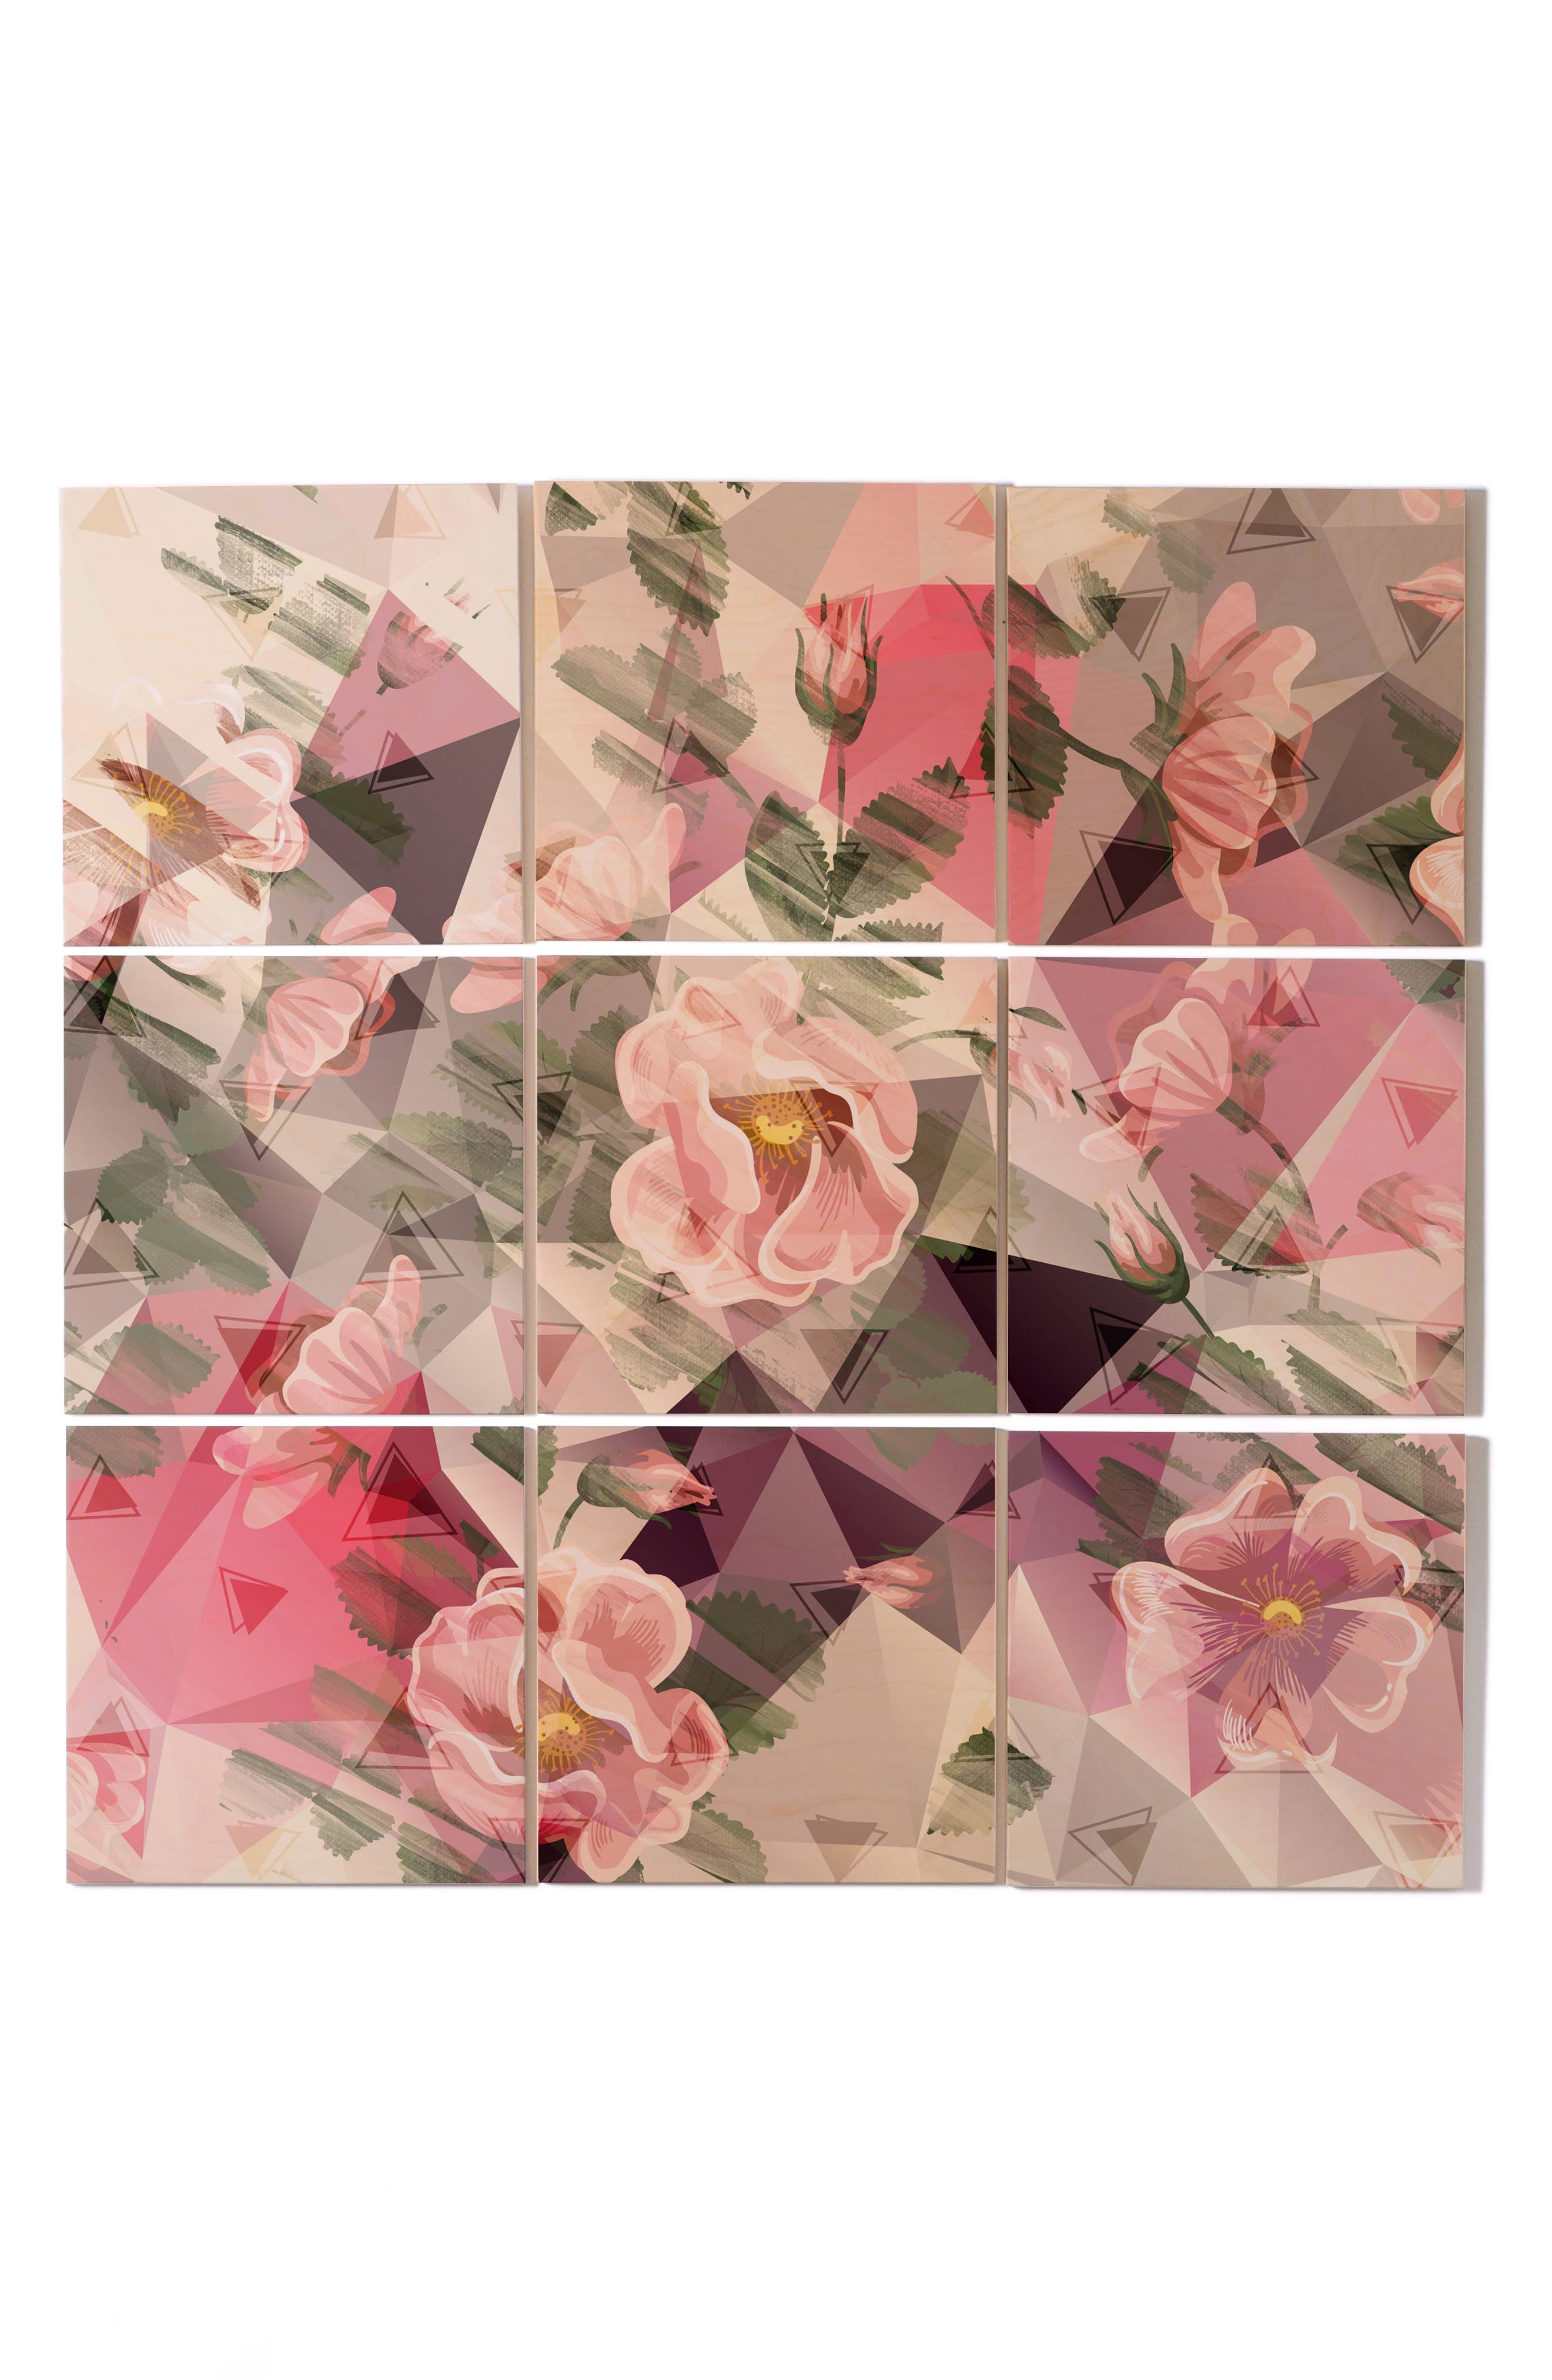 DENY DESIGNS,                             Floral 9-Piece Wood Wall Mural,                             Main thumbnail 1, color,                             PINK